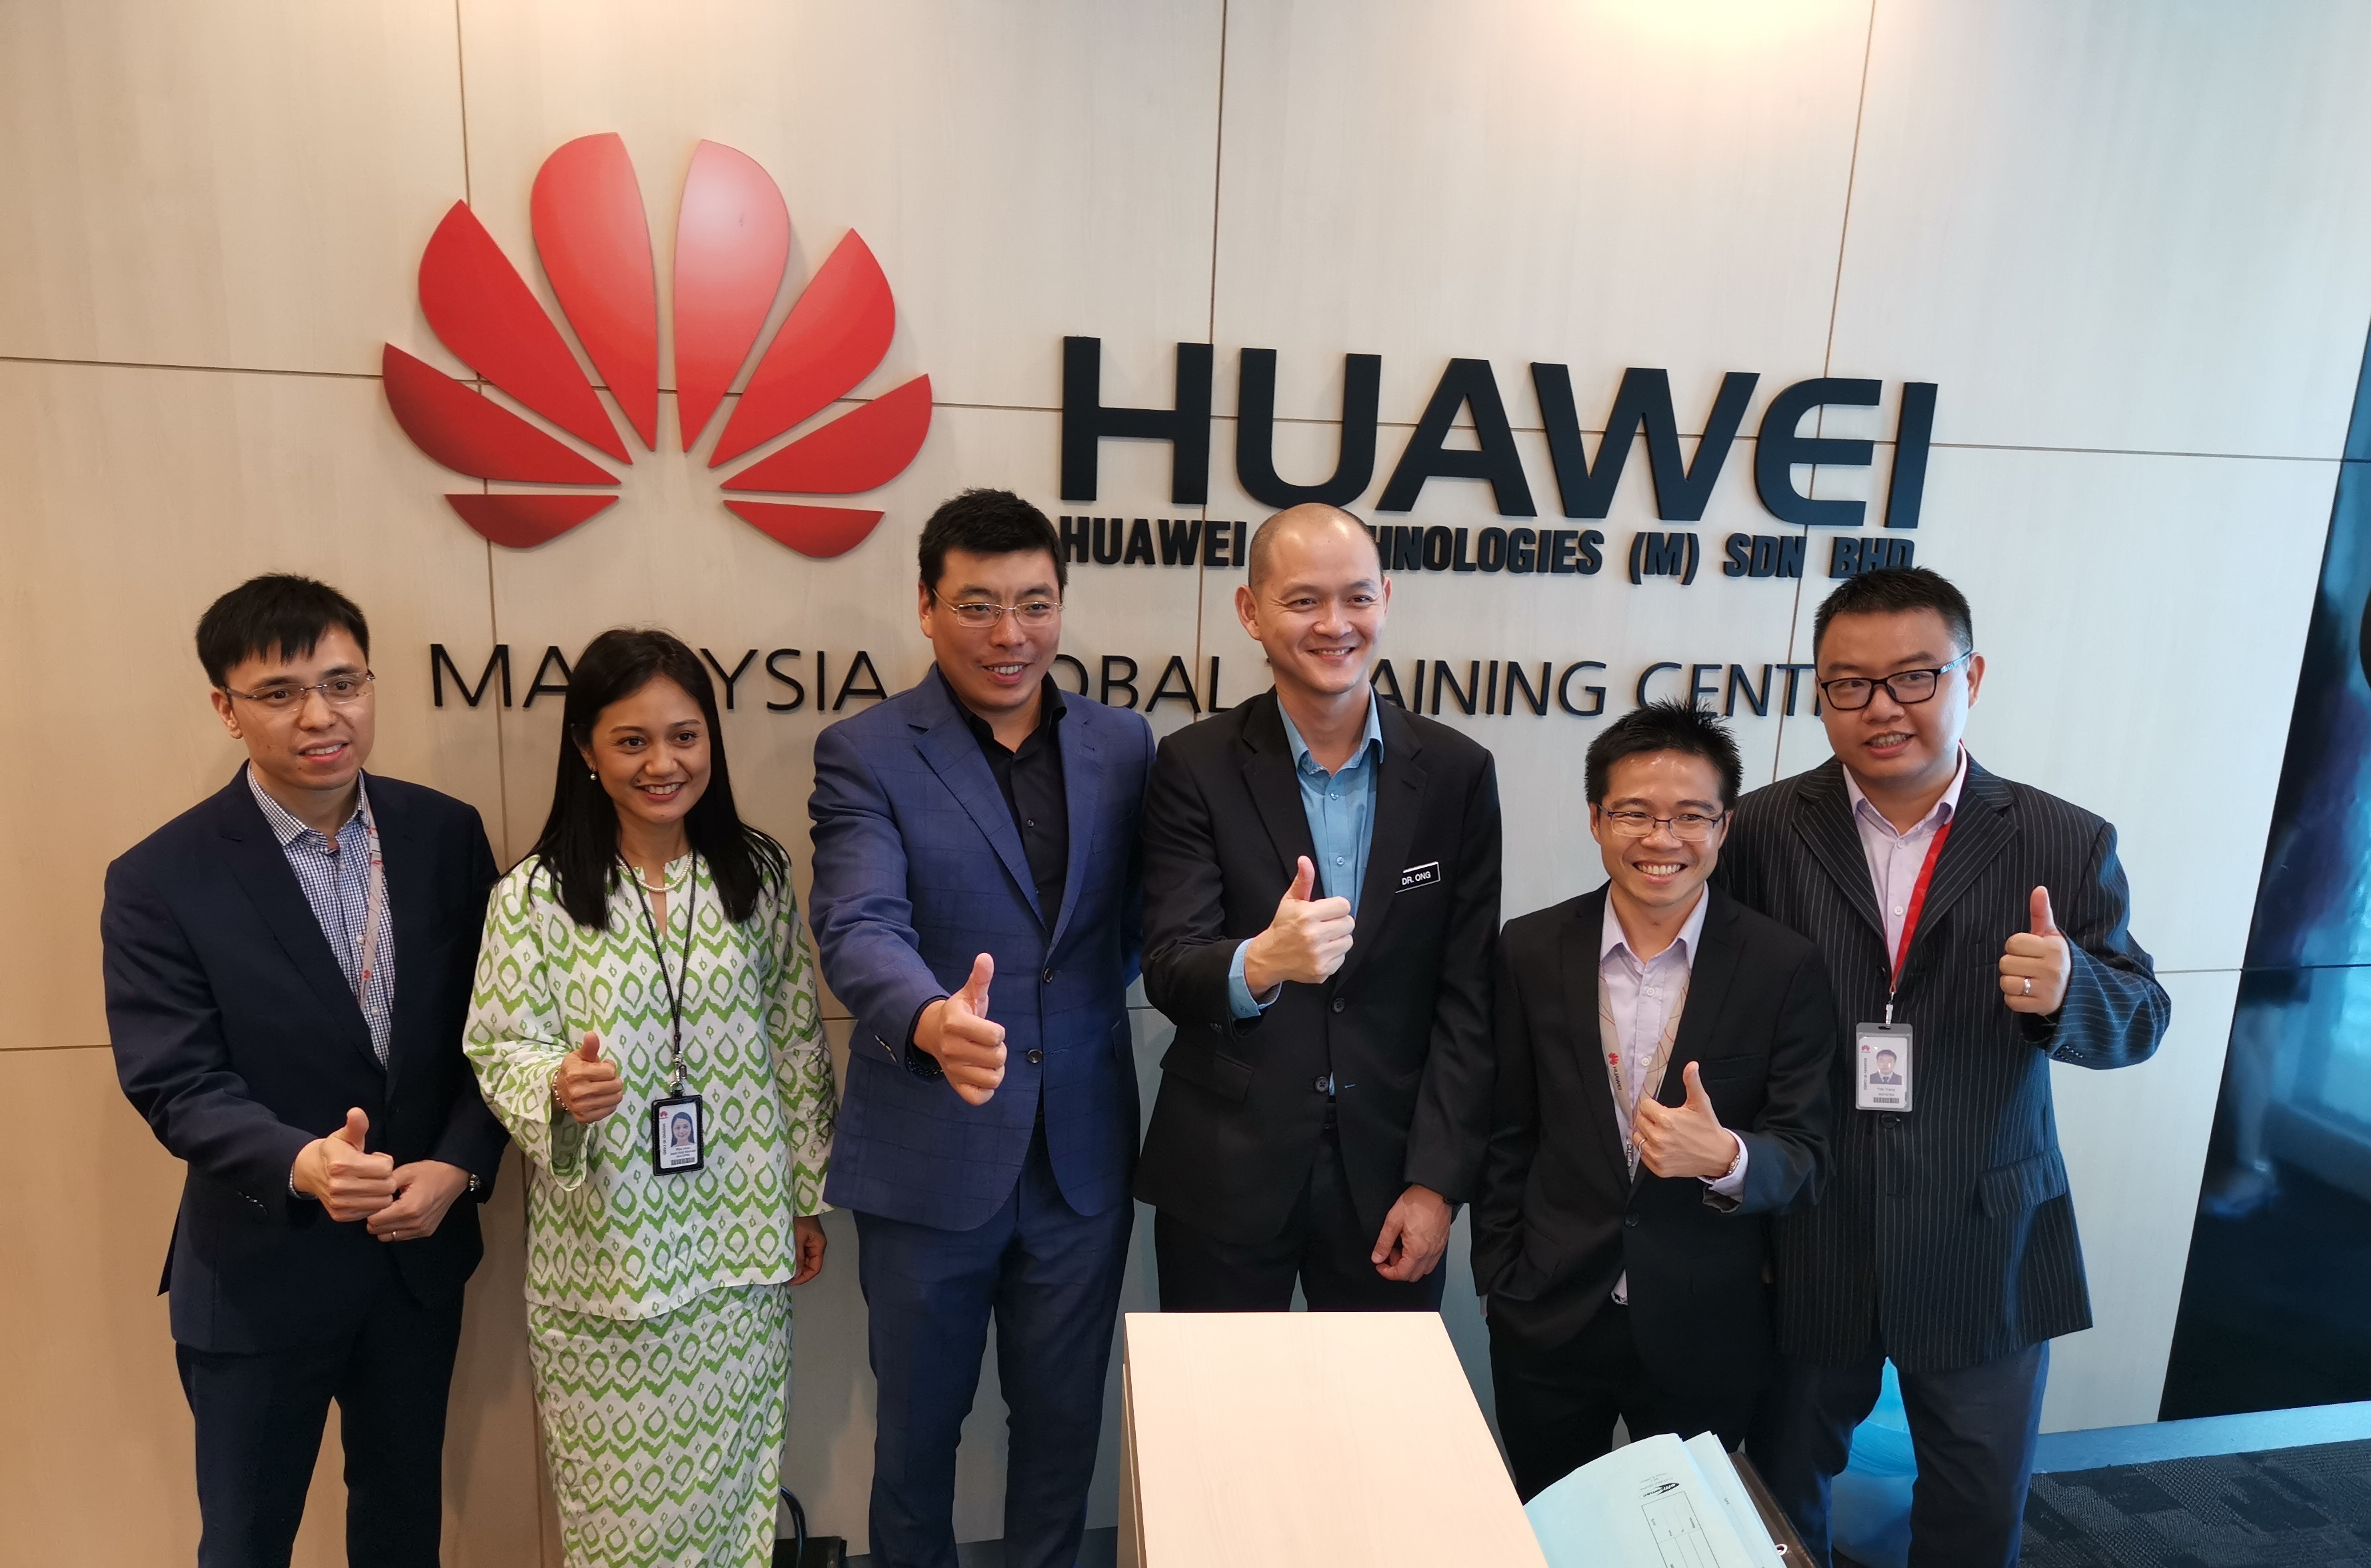 Singapore telecoms company M1 will be standing by China's Huawei